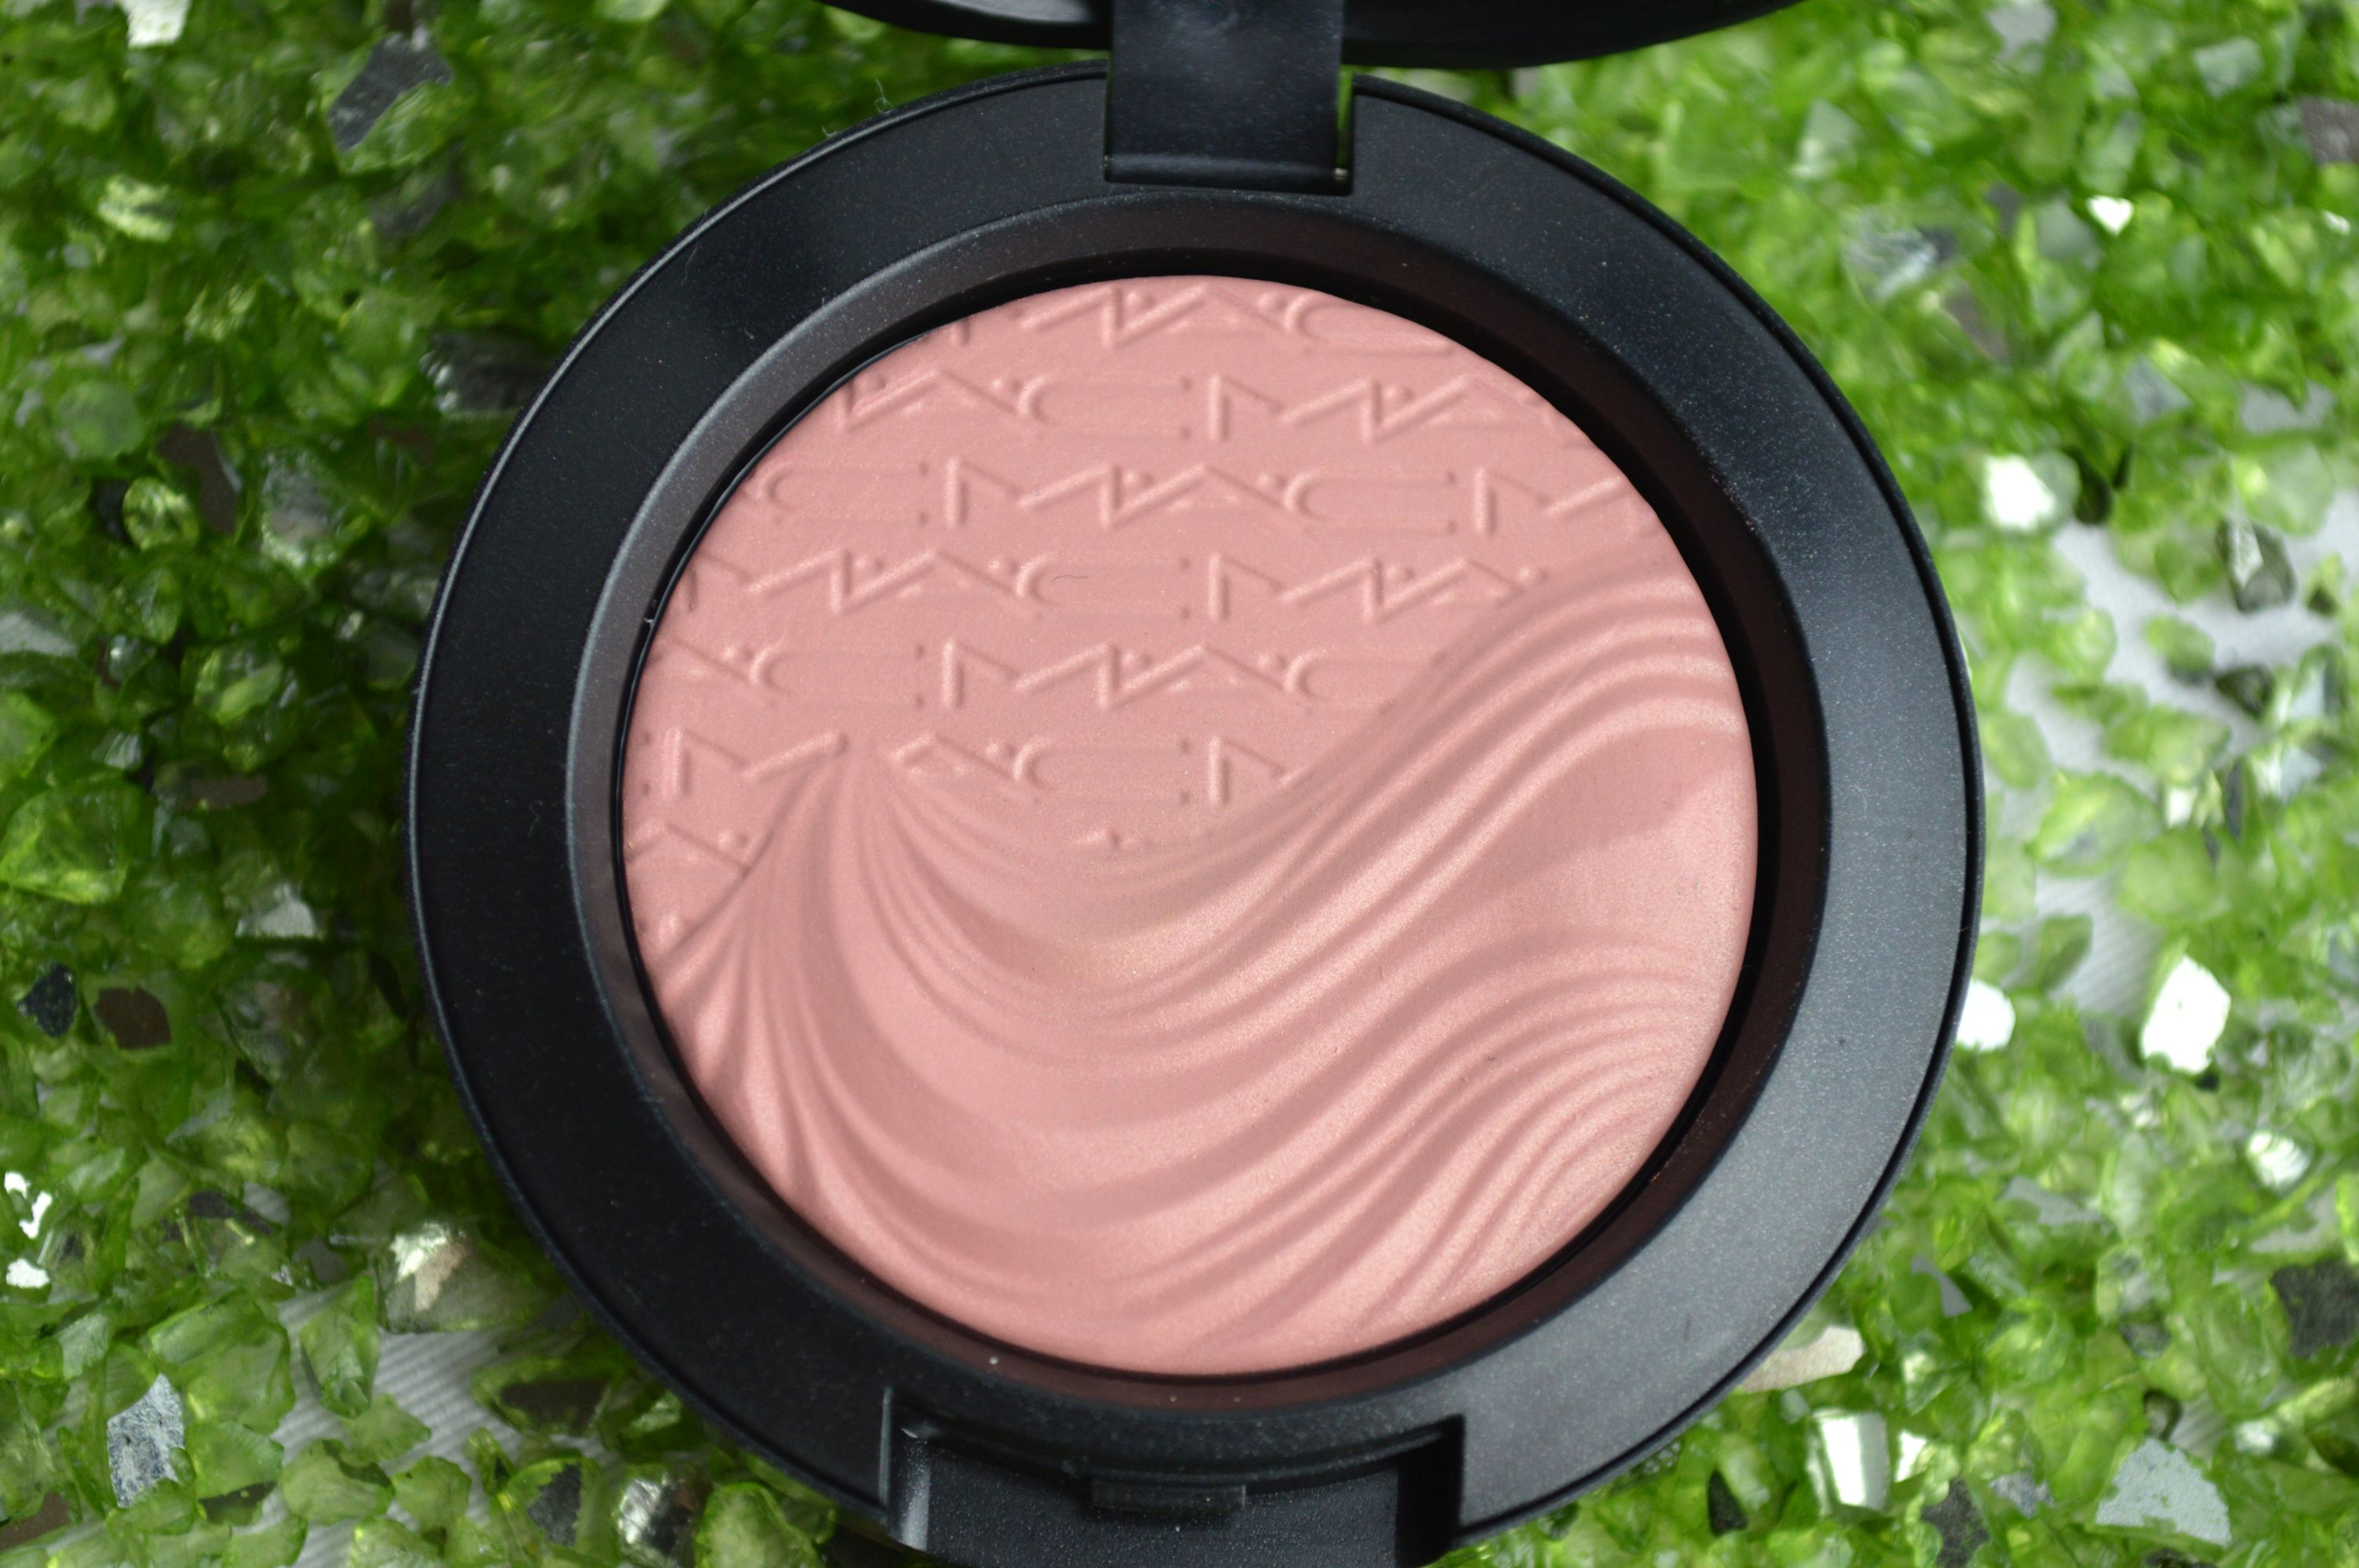 MAC_Blush_At_dusk_c